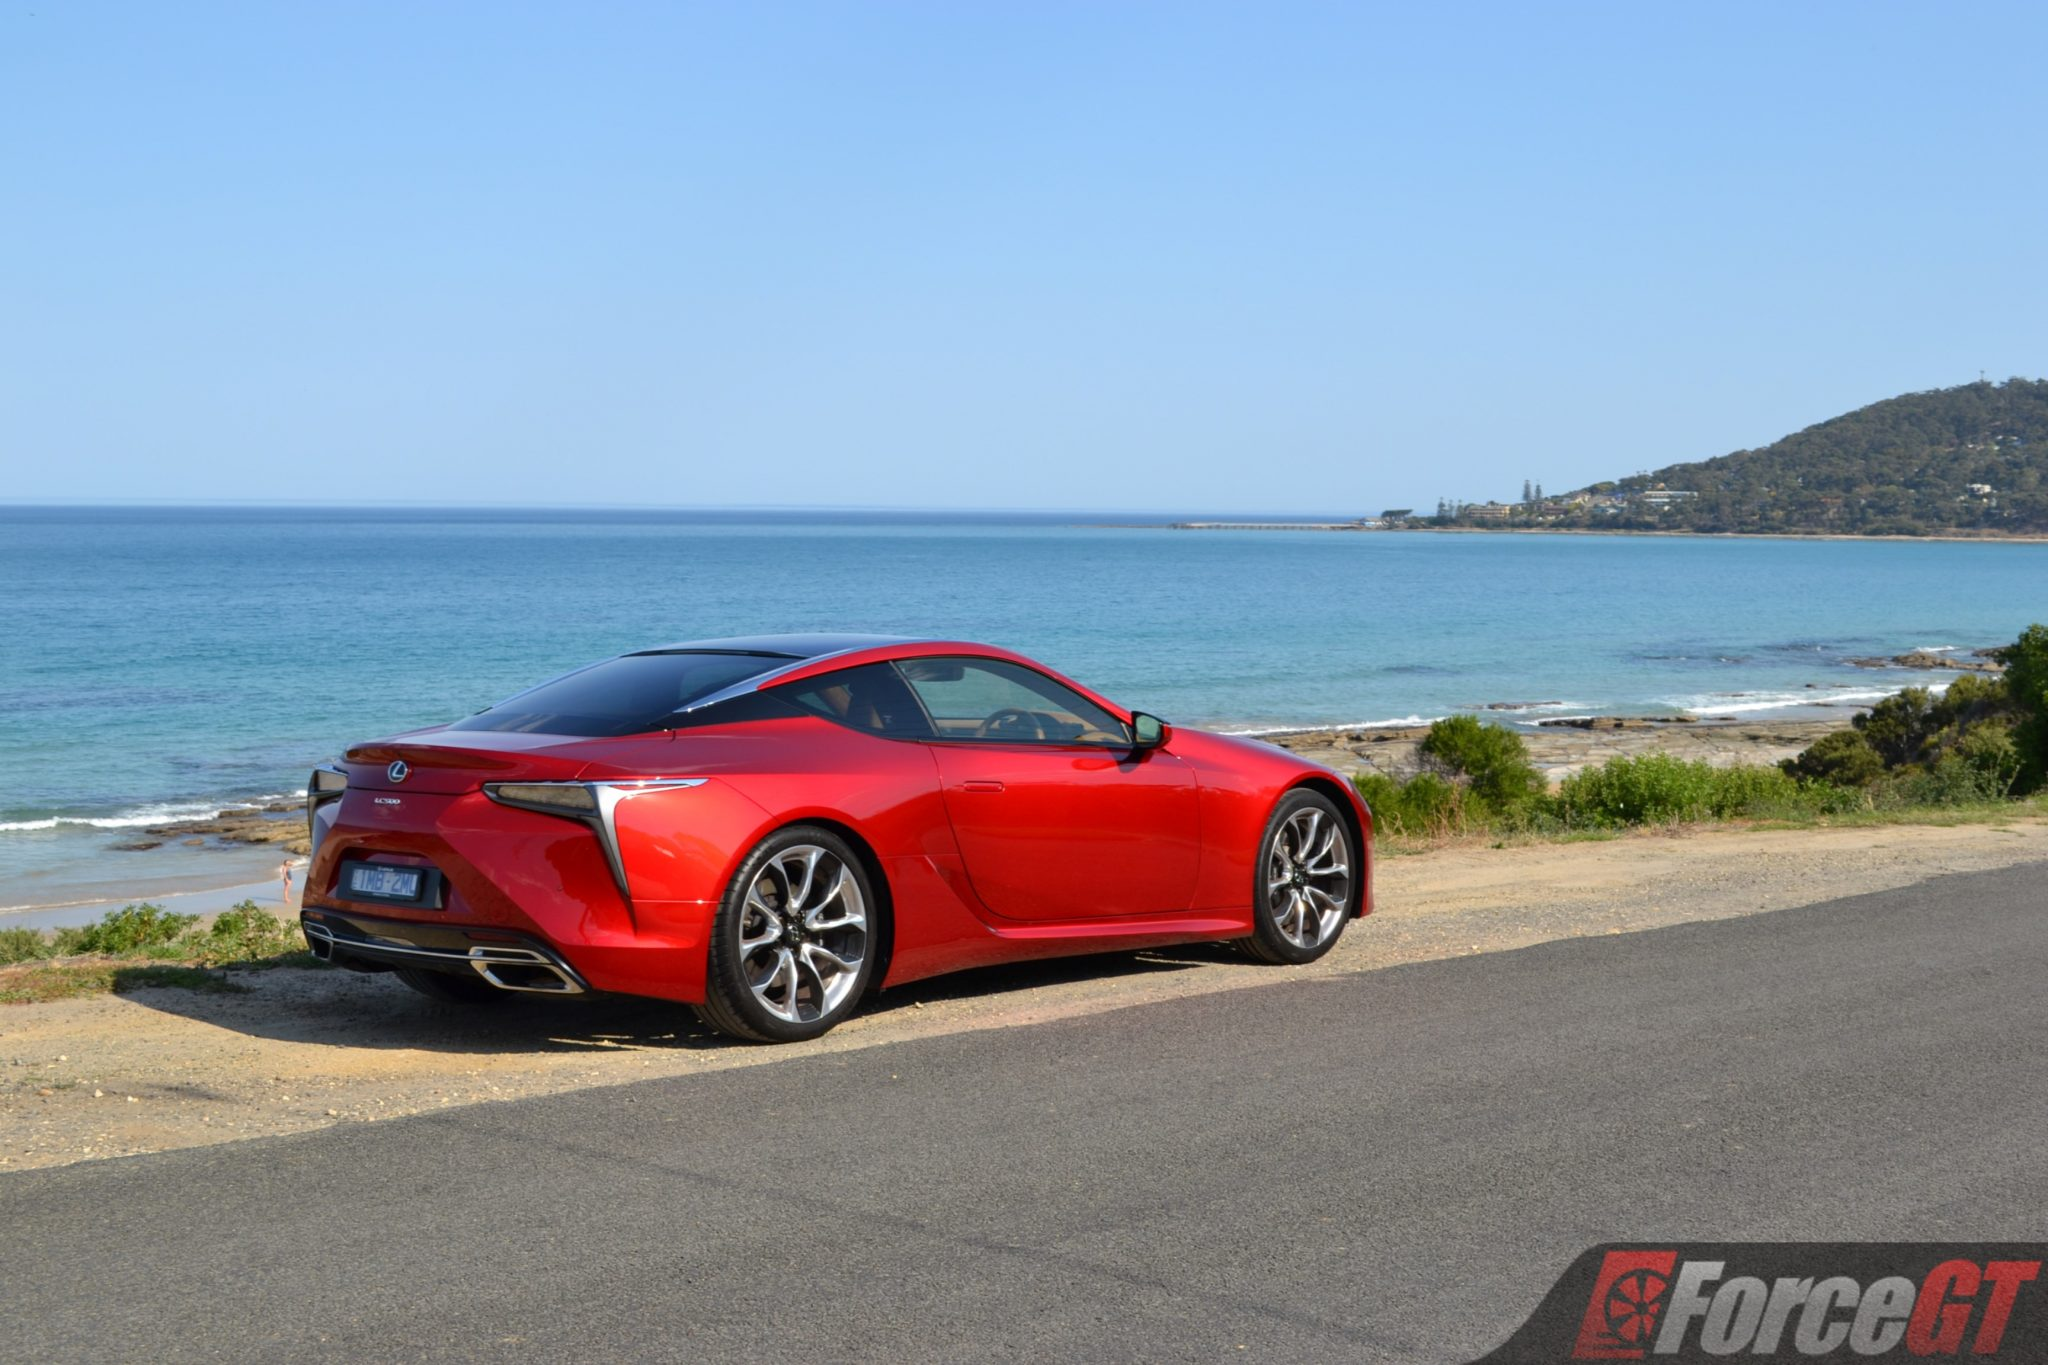 2019 Lexus LC 500 Review - the best Grand Coupe under $200k